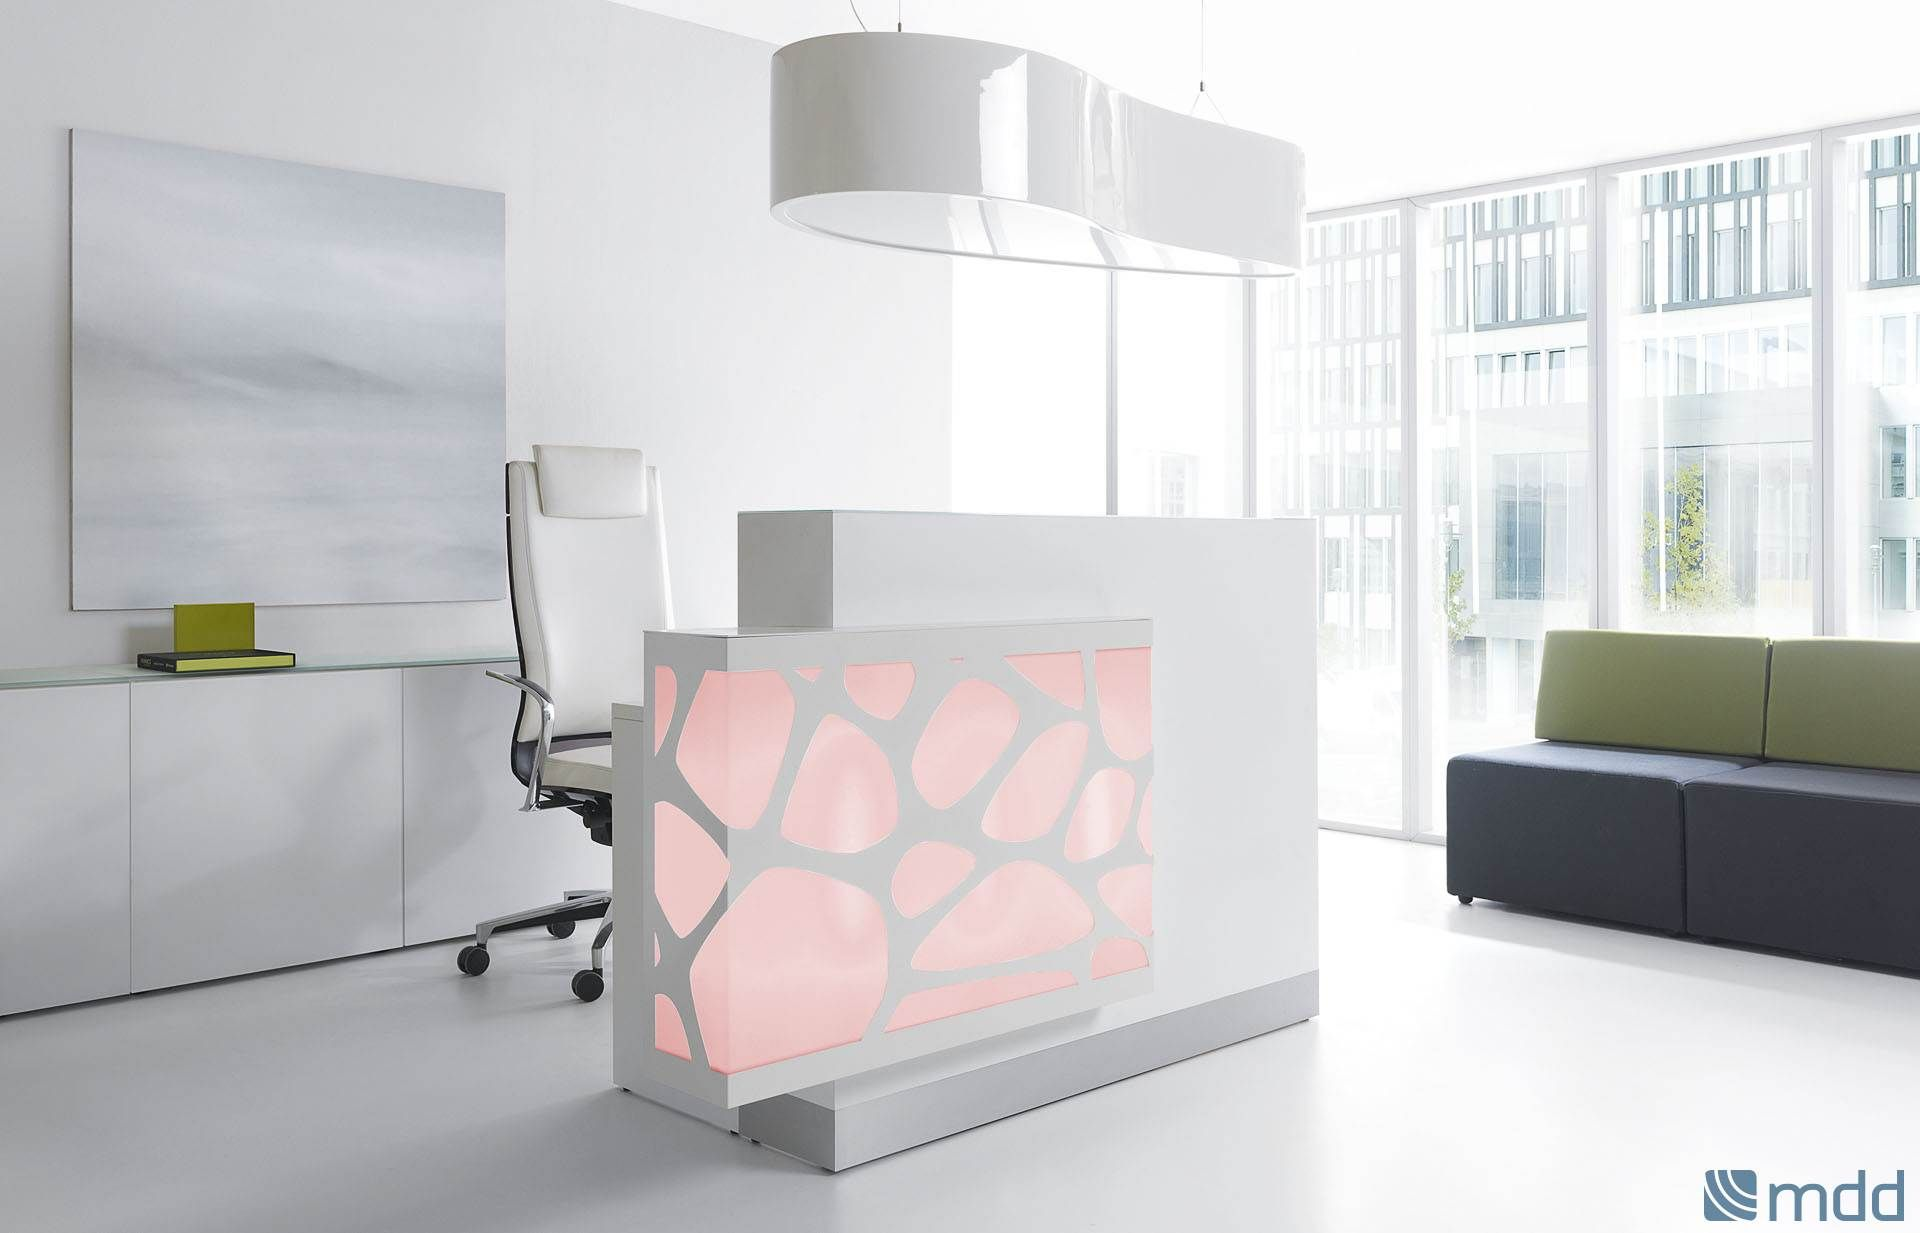 The New Reception Desk By Mdd Takes Its Design Straight